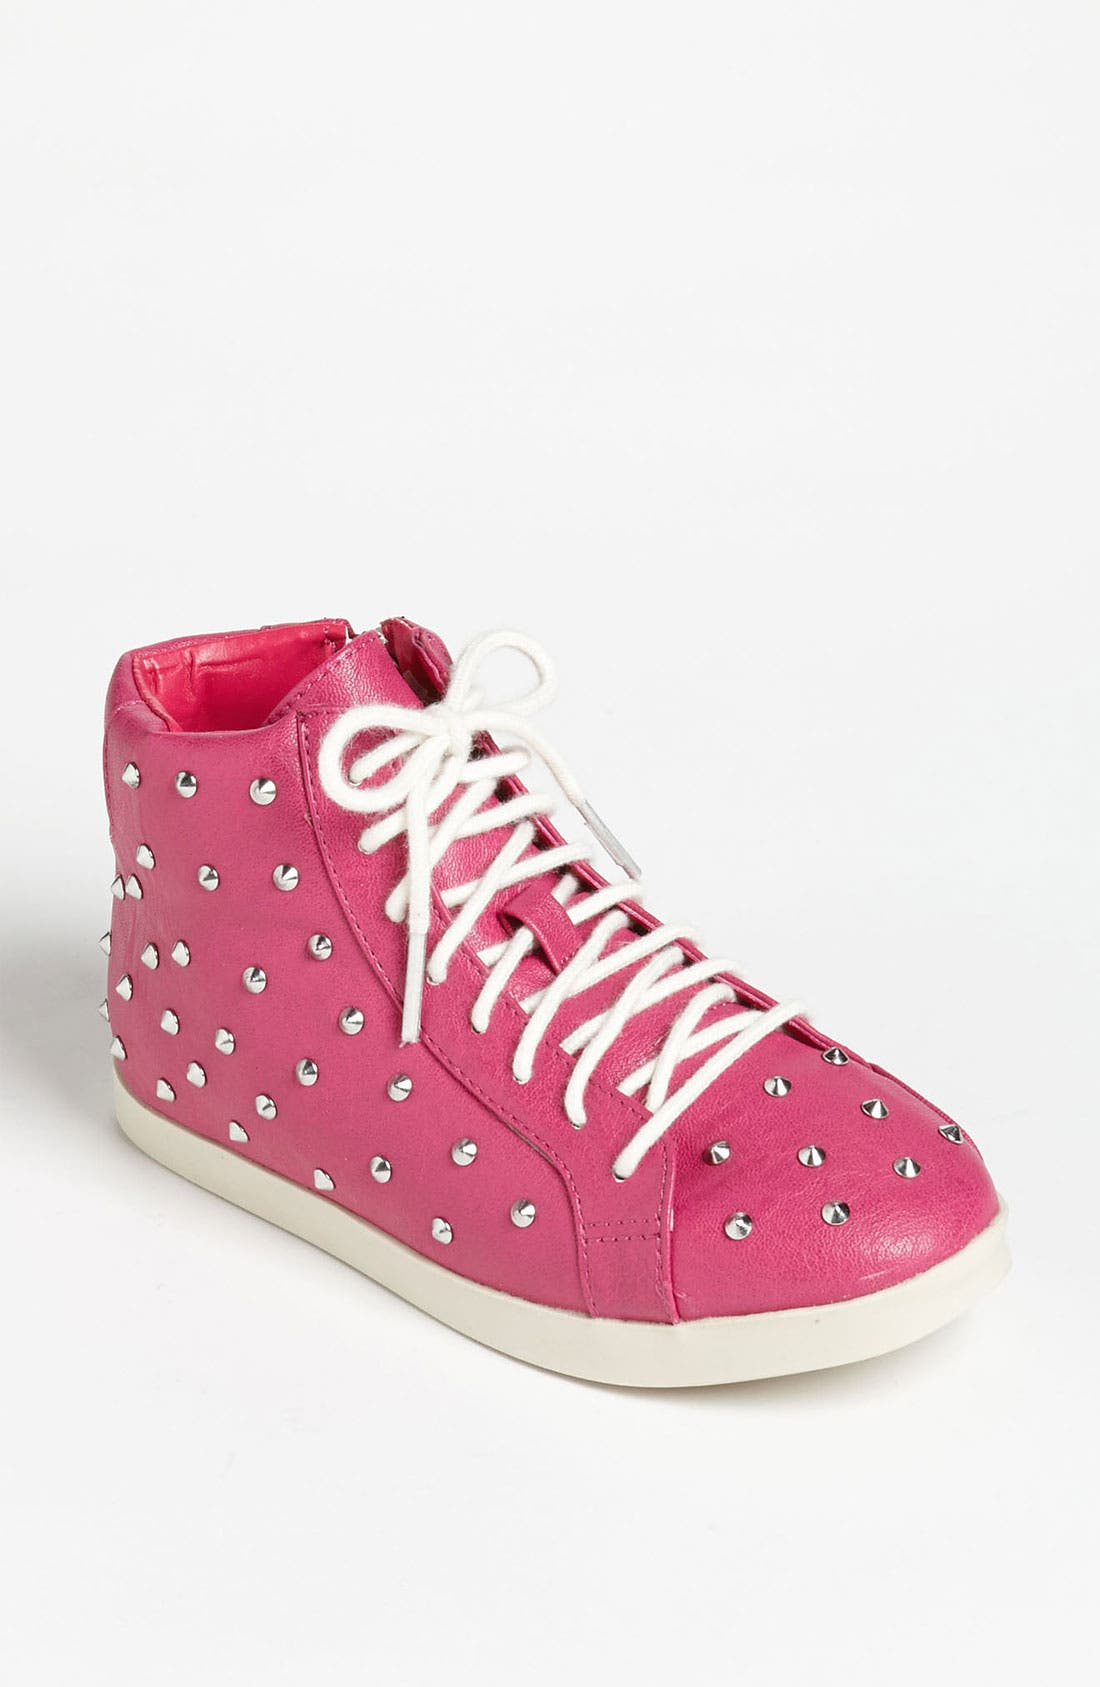 Alternate Image 1 Selected - Steve Madden 'Twylight' Sneaker (Little Kid & Big Kid)